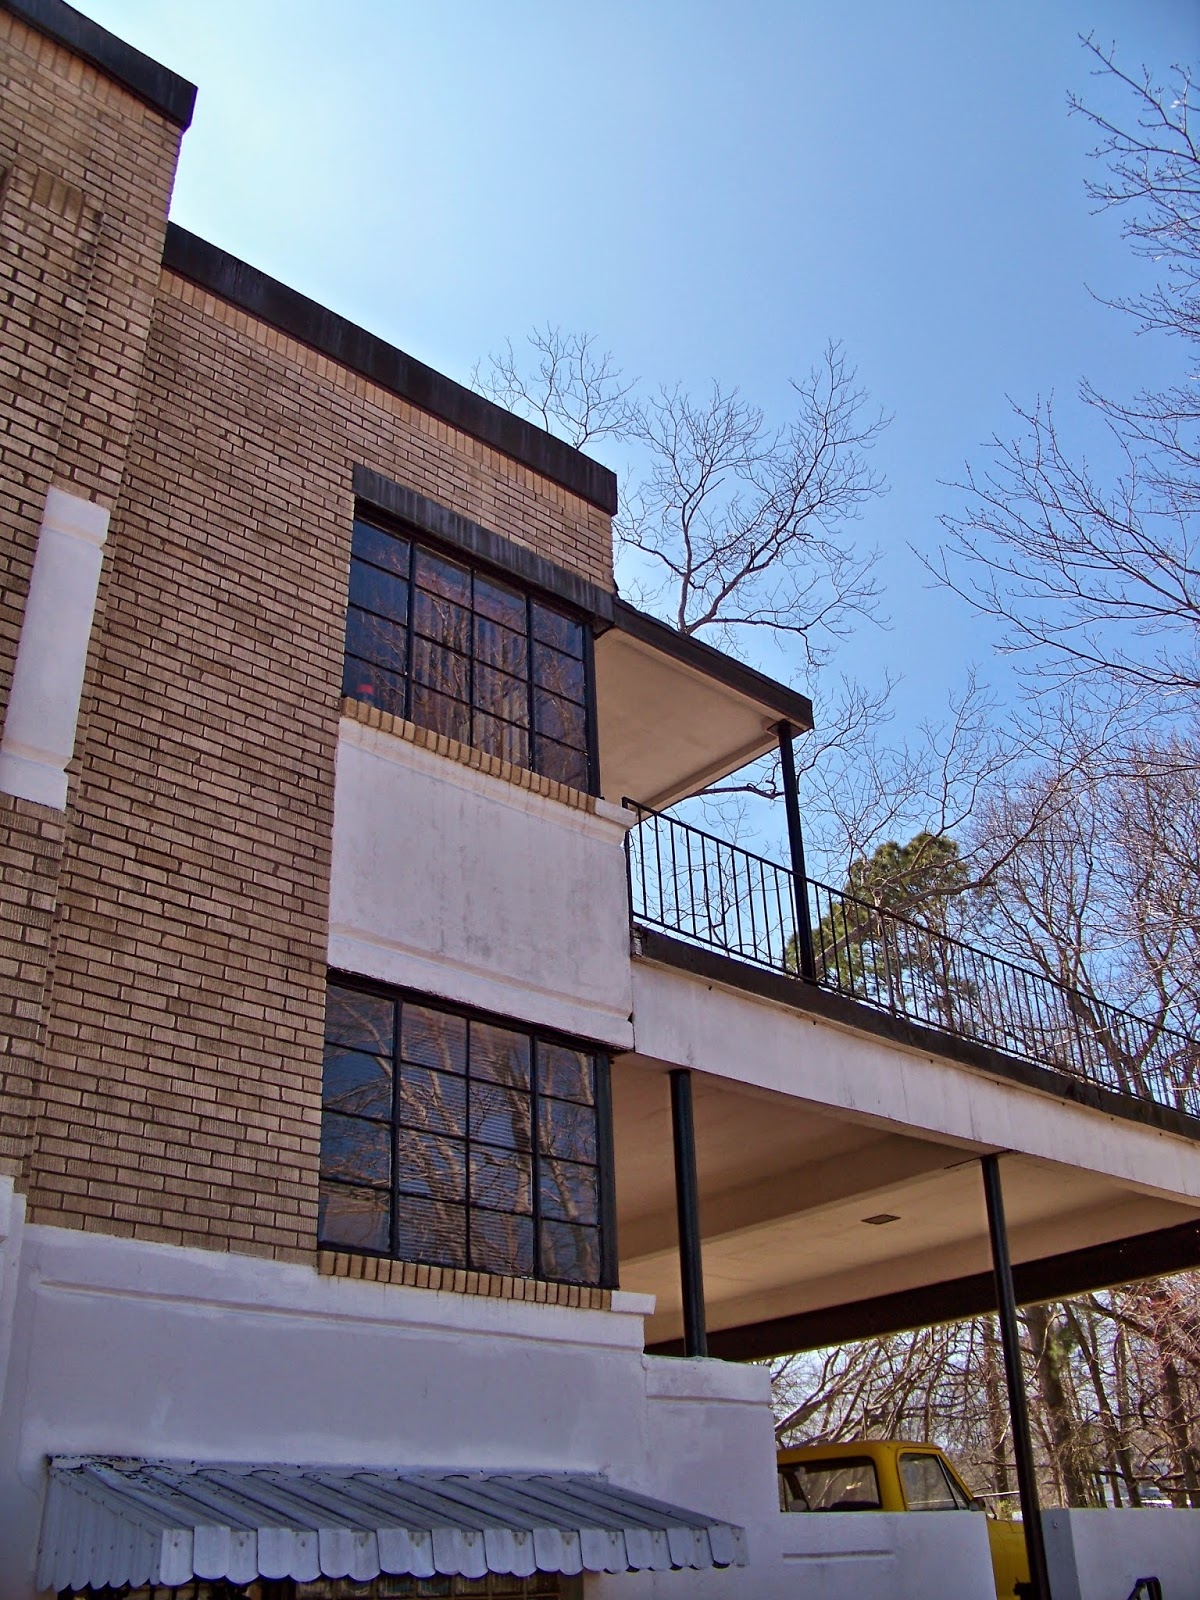 however this is contrasted by the very modern steel windows windows which turn the corners of the building this feature is quite common in bauhaus and